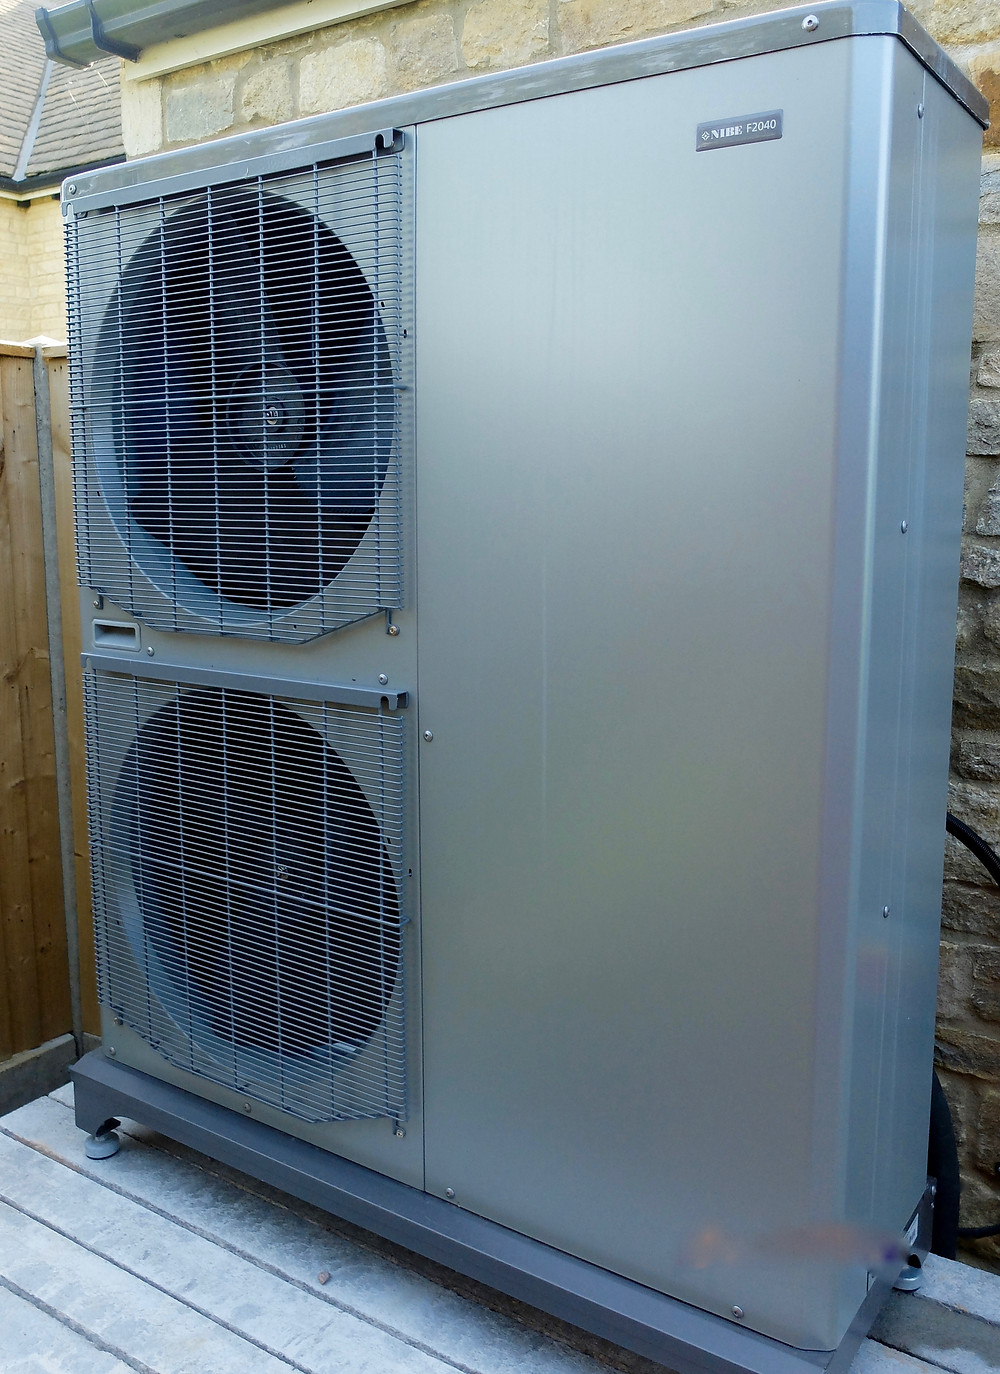 This is the highest capacity Nibe air source heat pump (16kW) installed recently at the rear of a large family home.